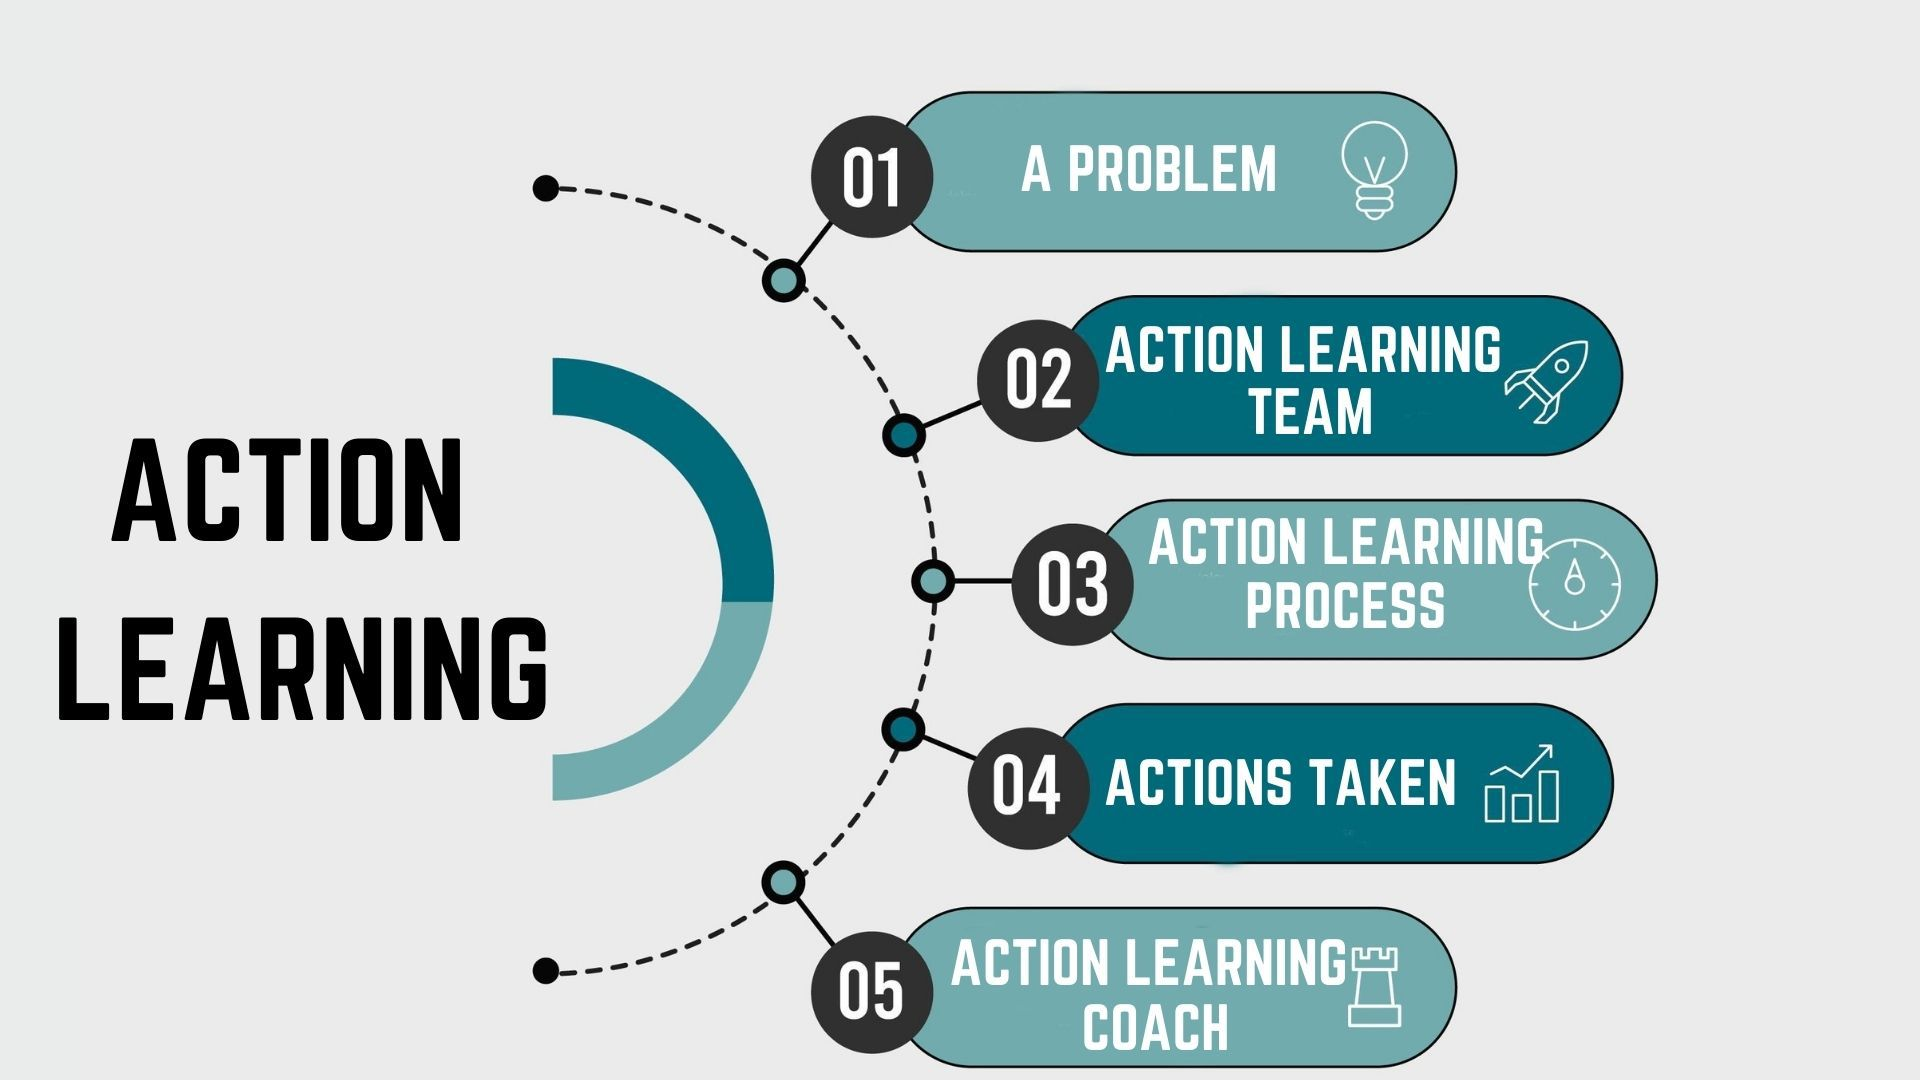 Components of action learning program